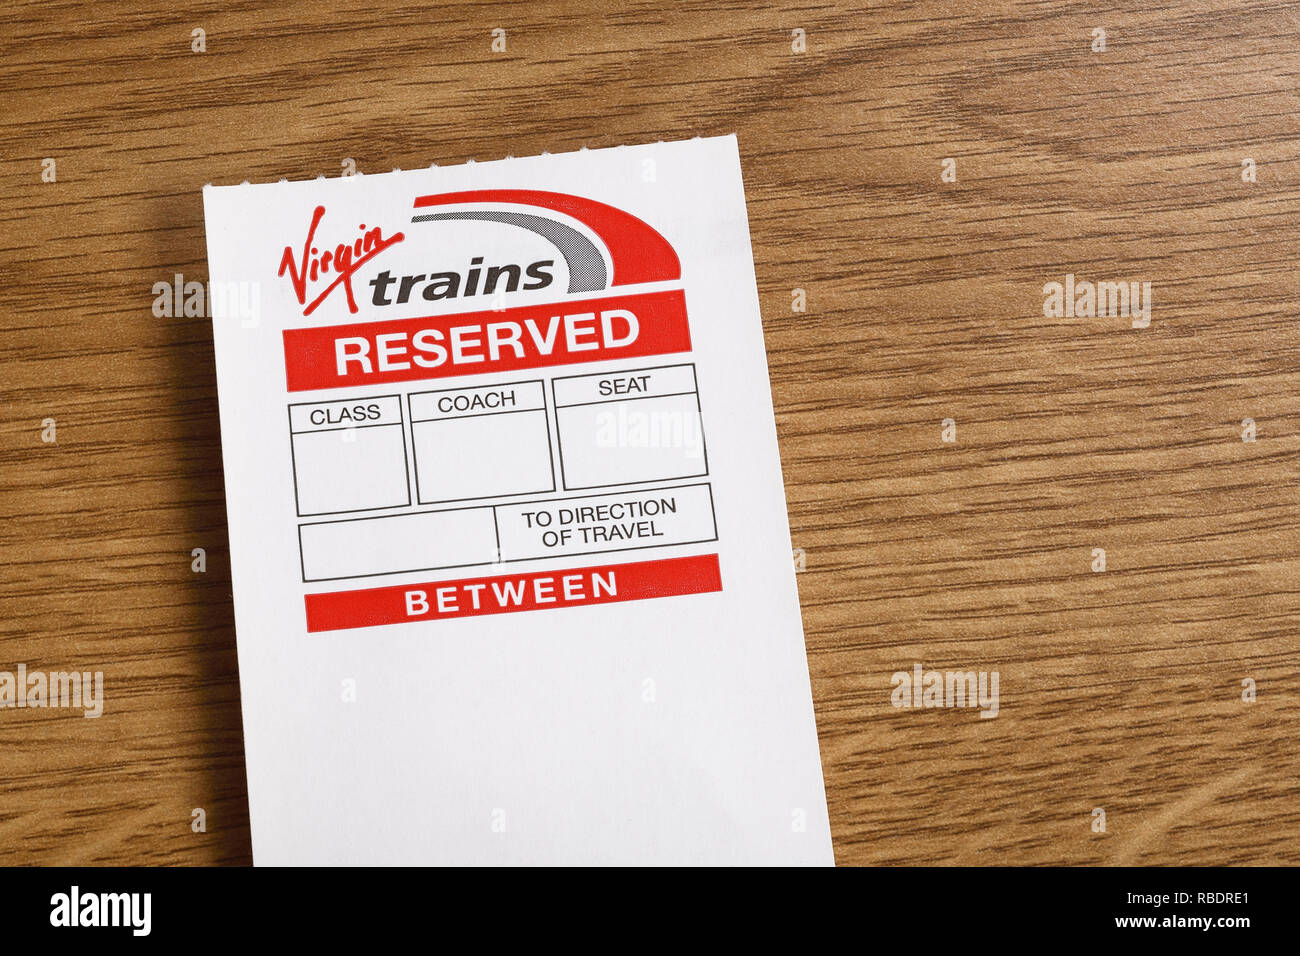 A Virgin Trains reserved seat ticket - Stock Image